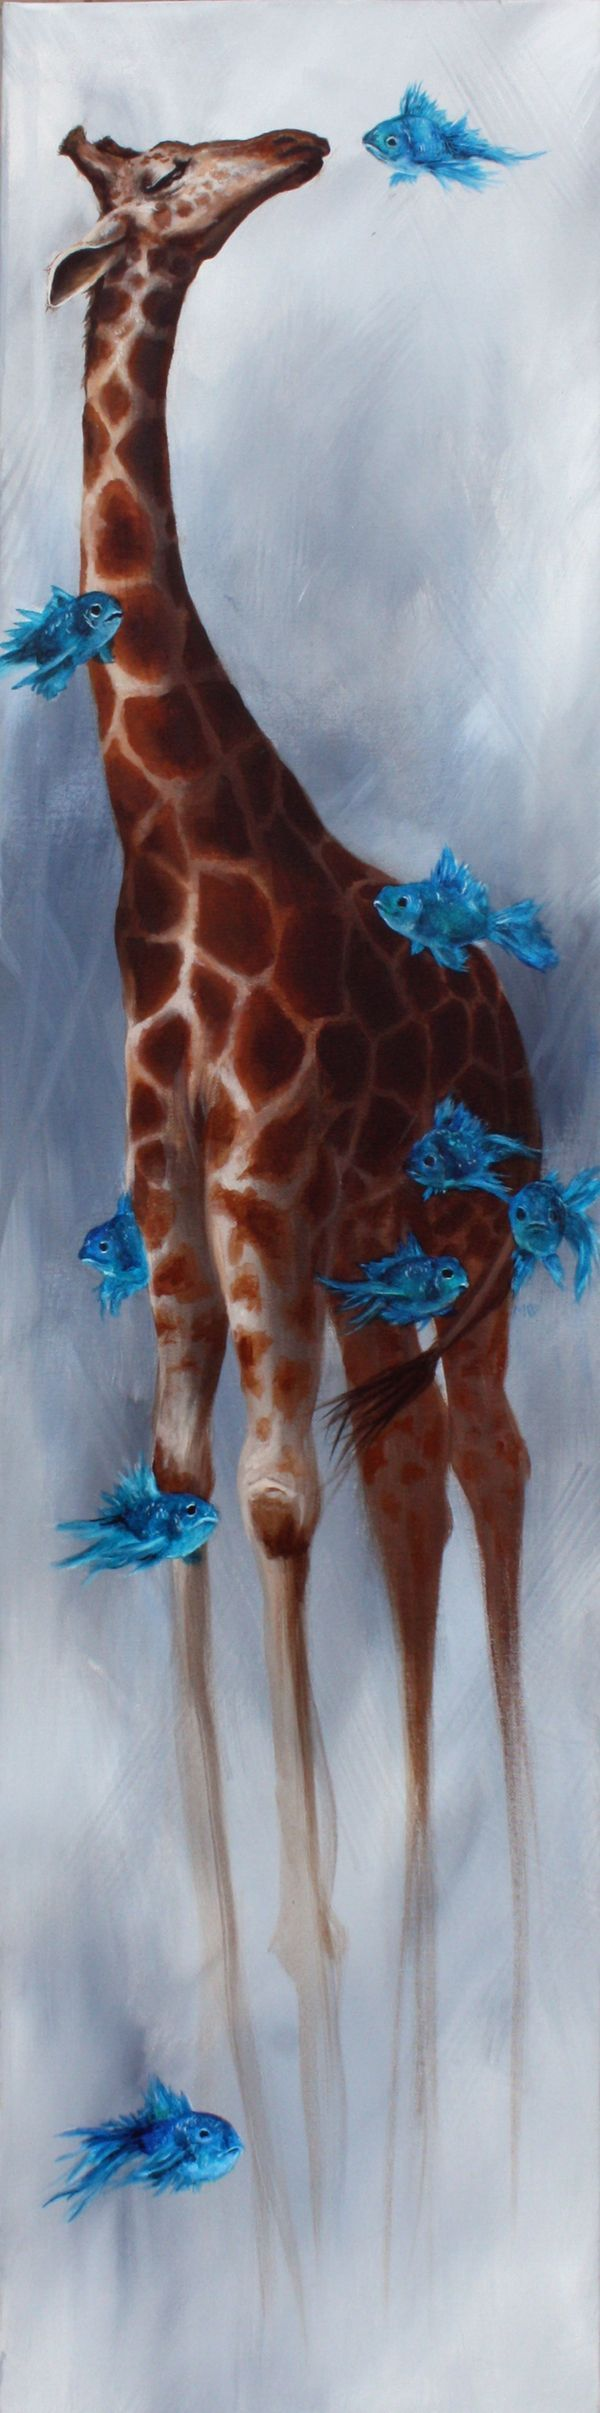 I always like a painted giraffe,this is cool!